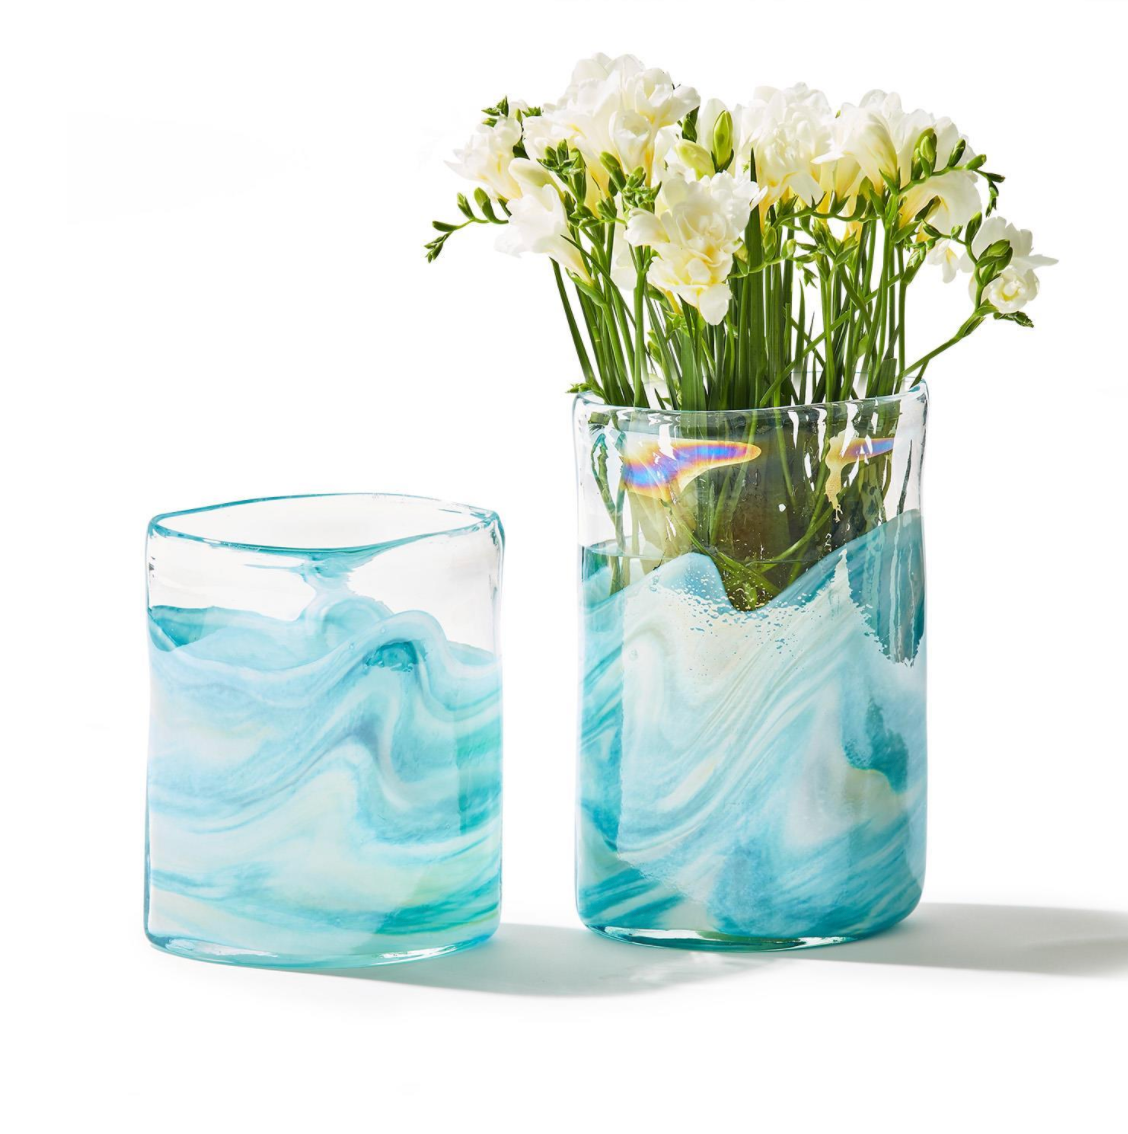 Ocean Waves Vases